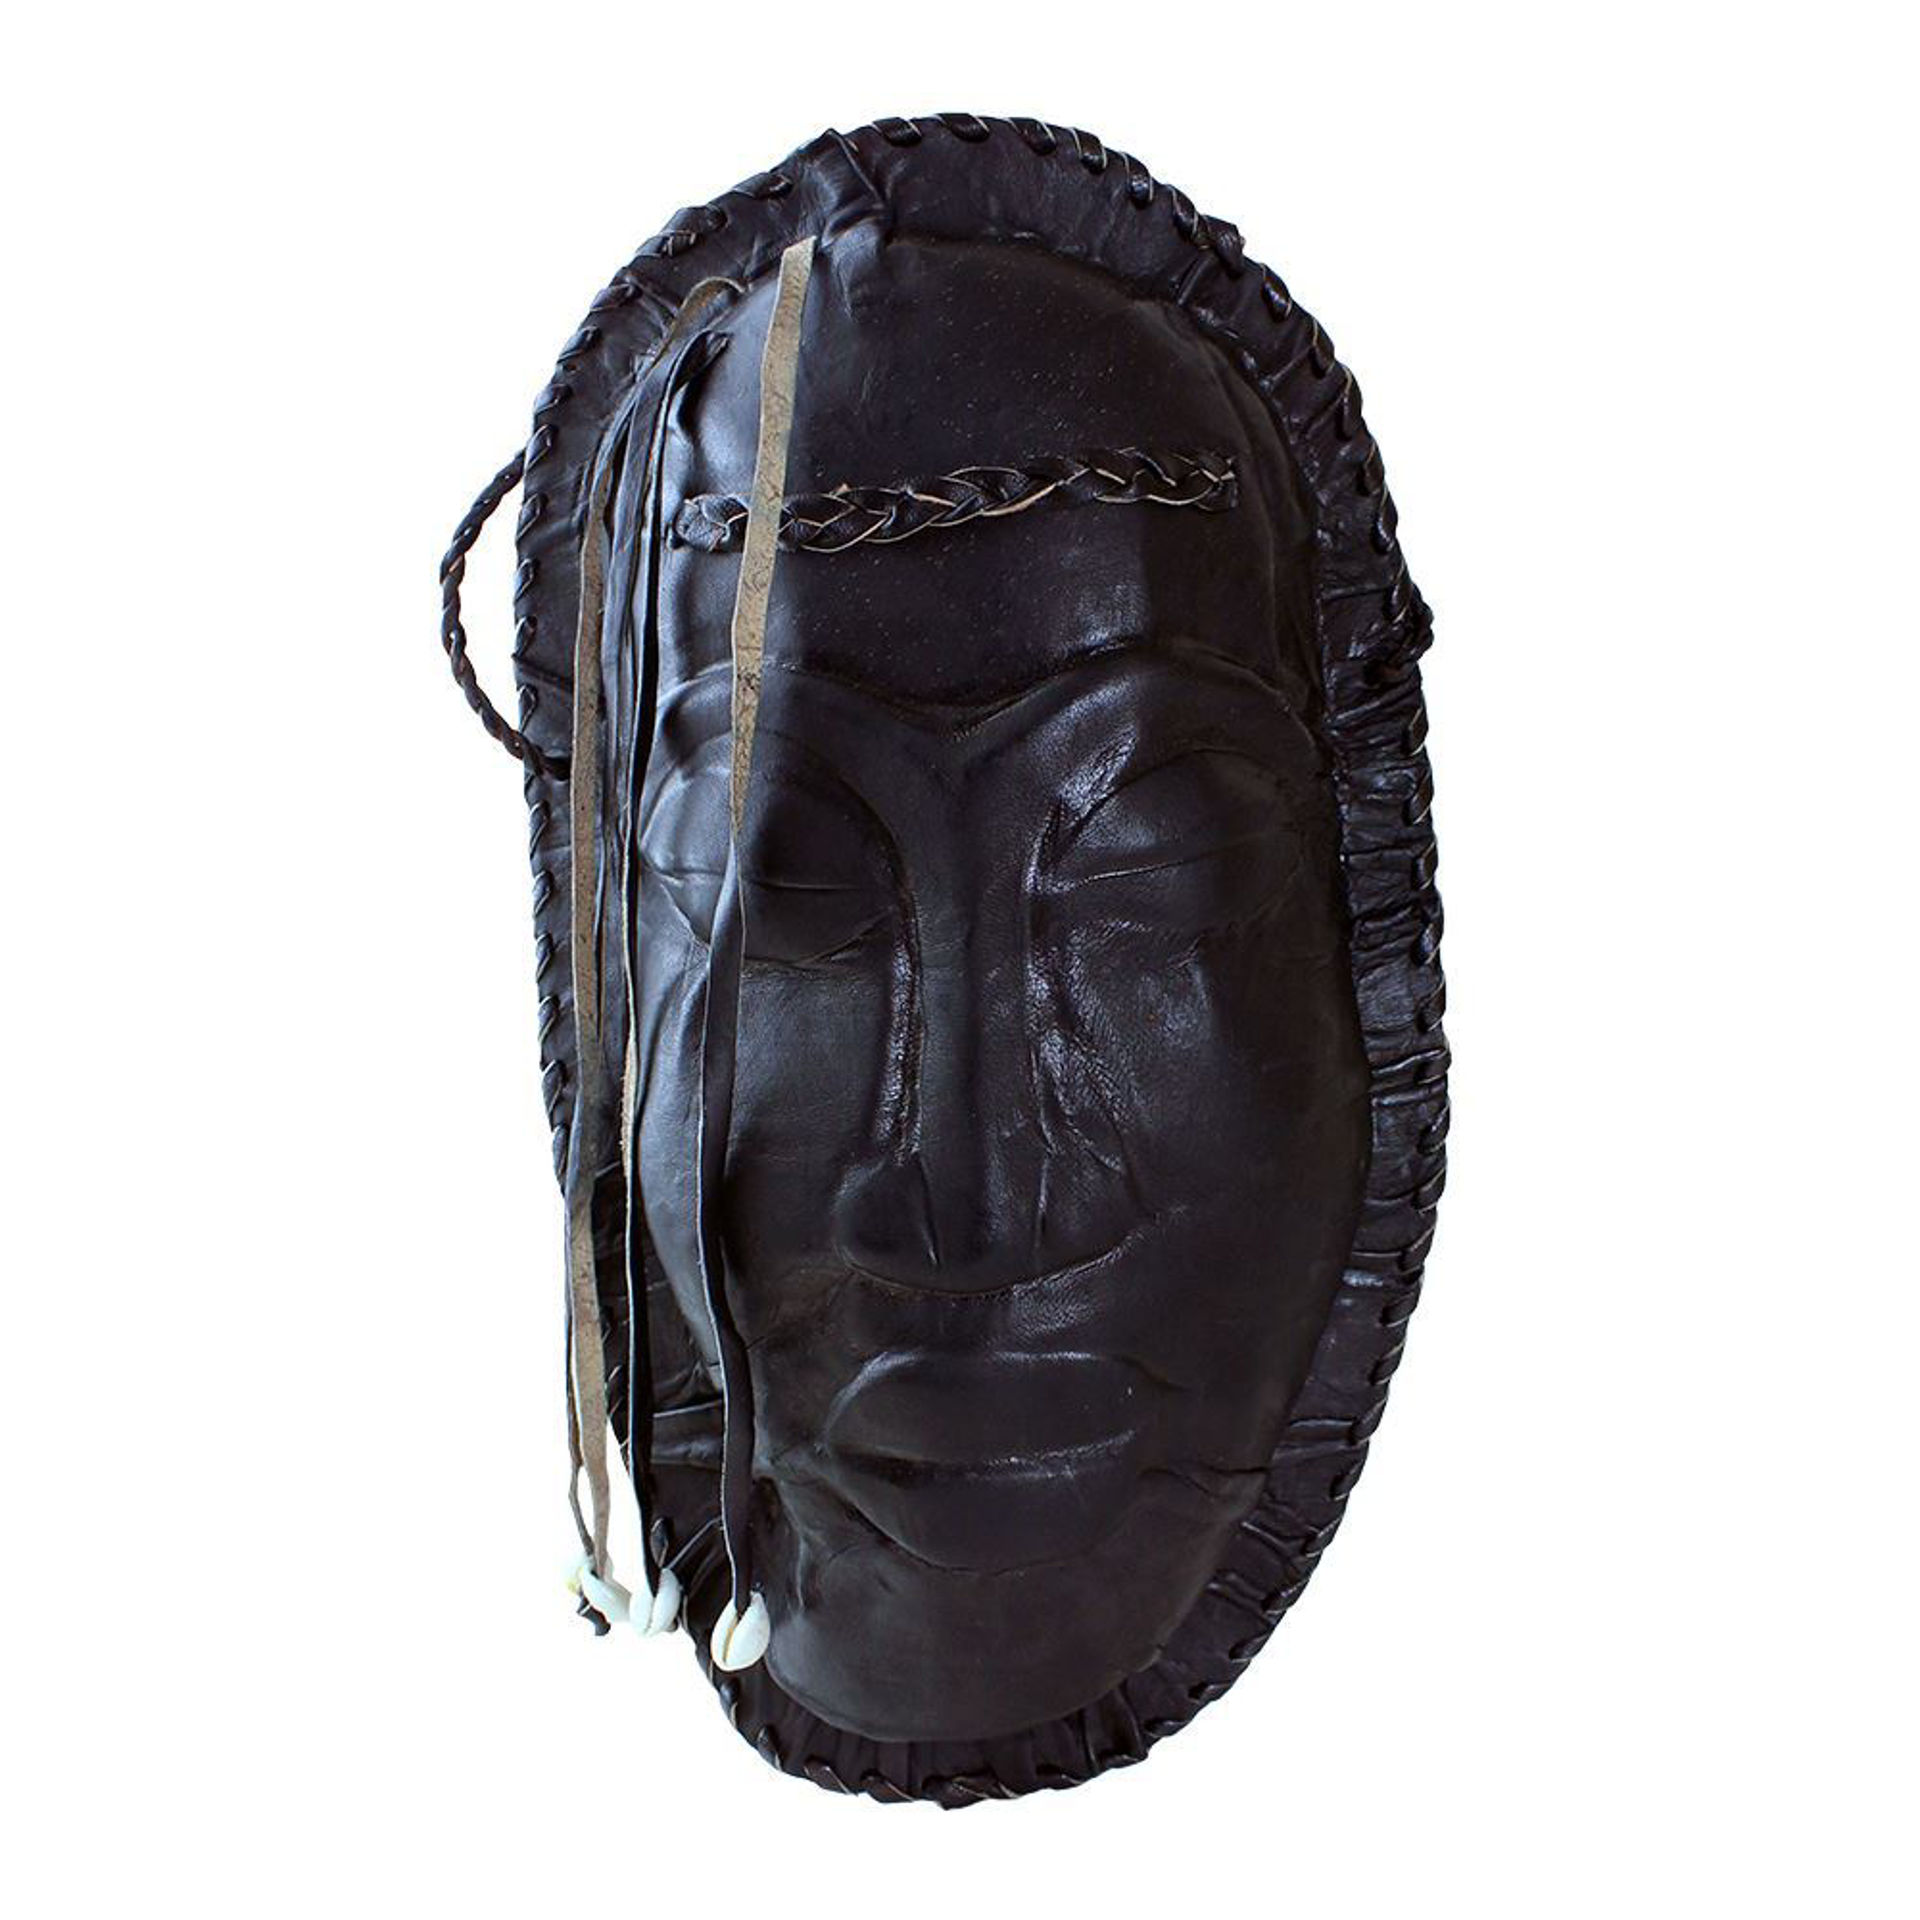 Picture of Black Leather Purse - Mask Design